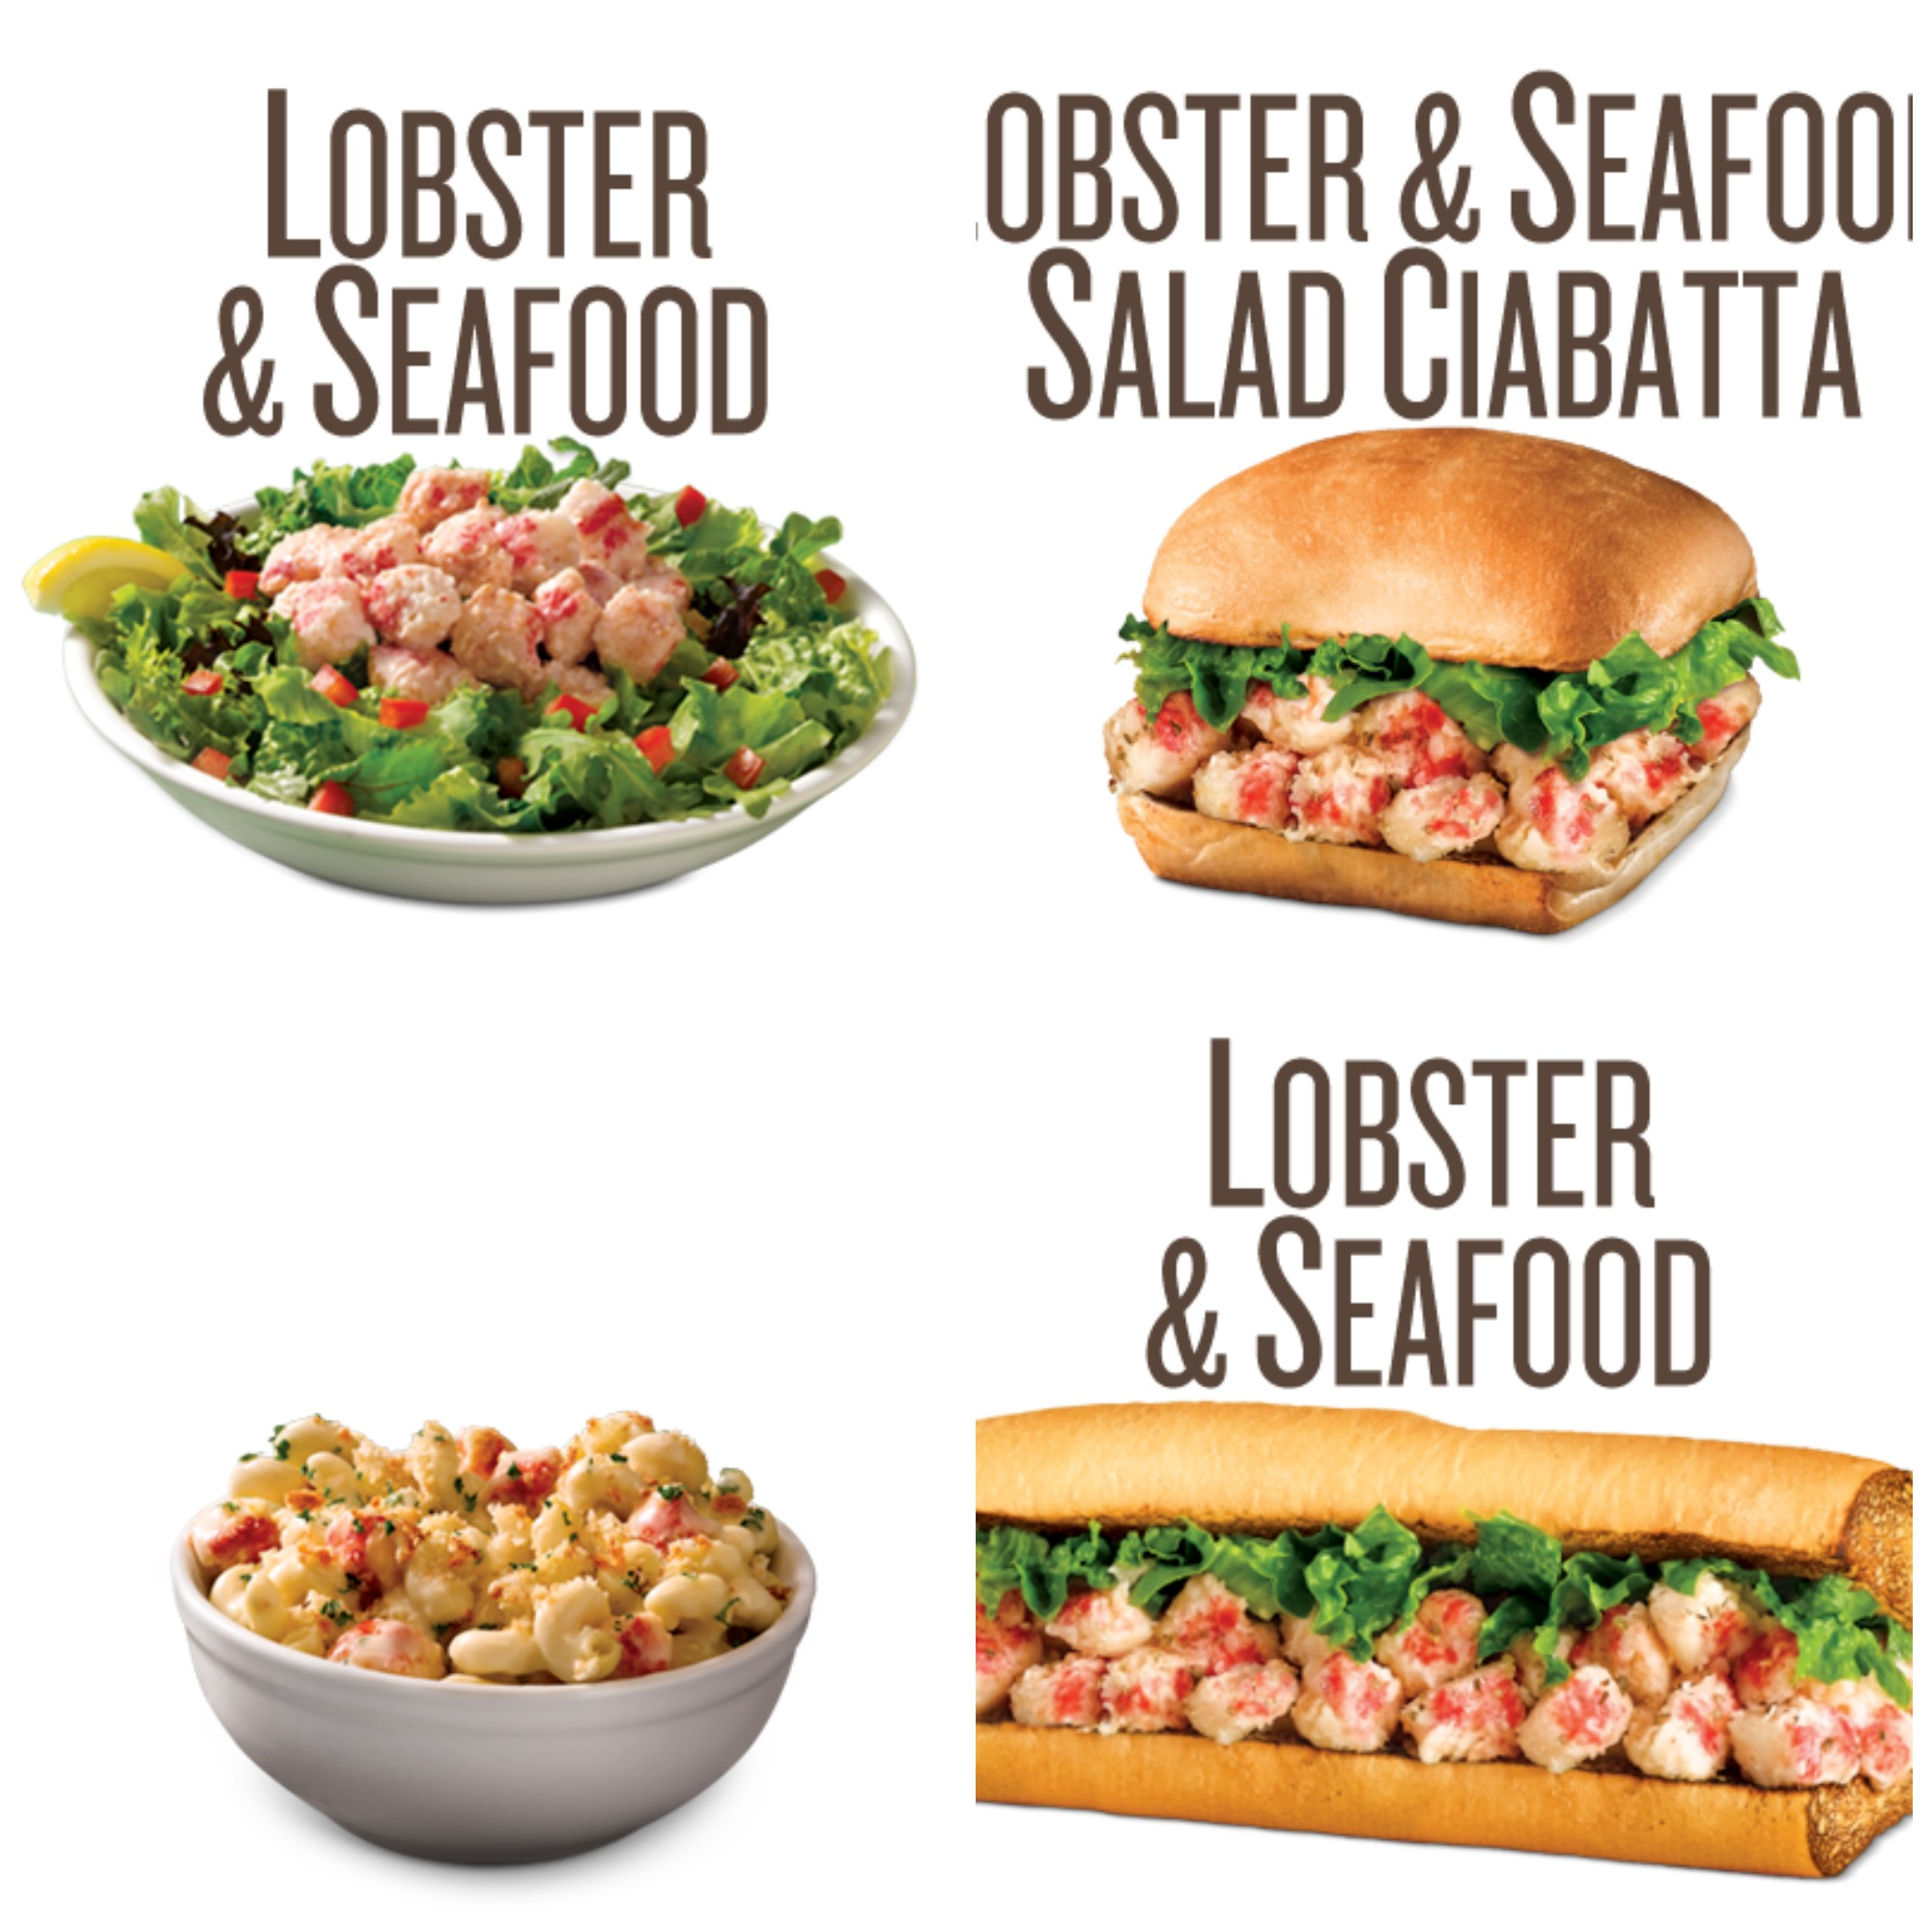 Cheese, Lobster & Seafood Salad Ciabatta, Lobster & Seafood Sandwich ...